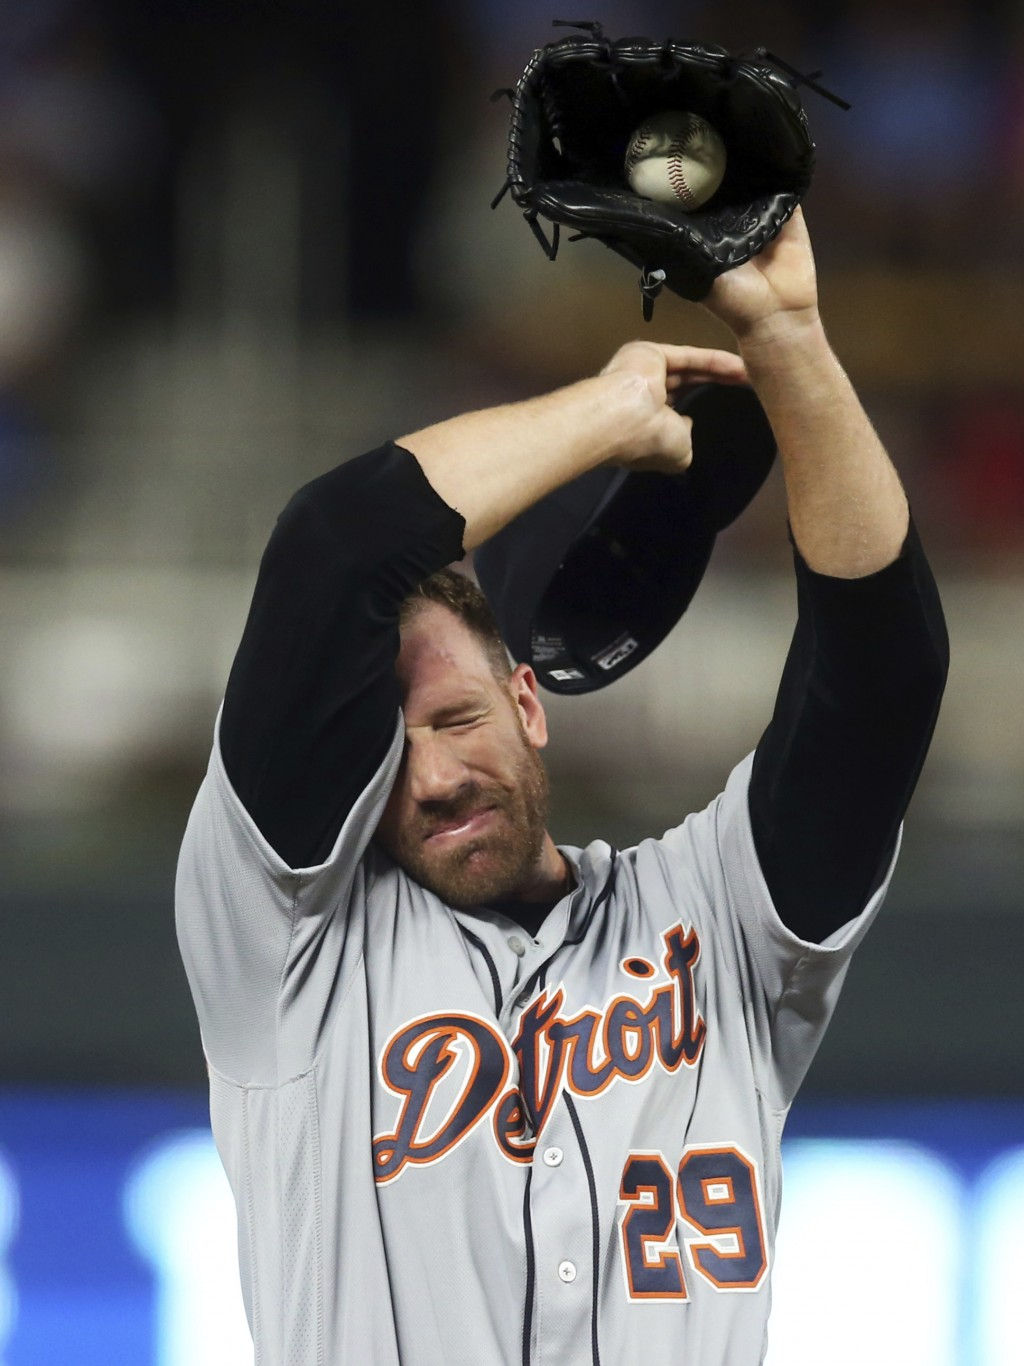 Detroit Tigers pitcher Zach McAllister wipes his face after giving up a hit to Minnesota Twins' Logan Forsythe during the sixth inning of a baseball g...